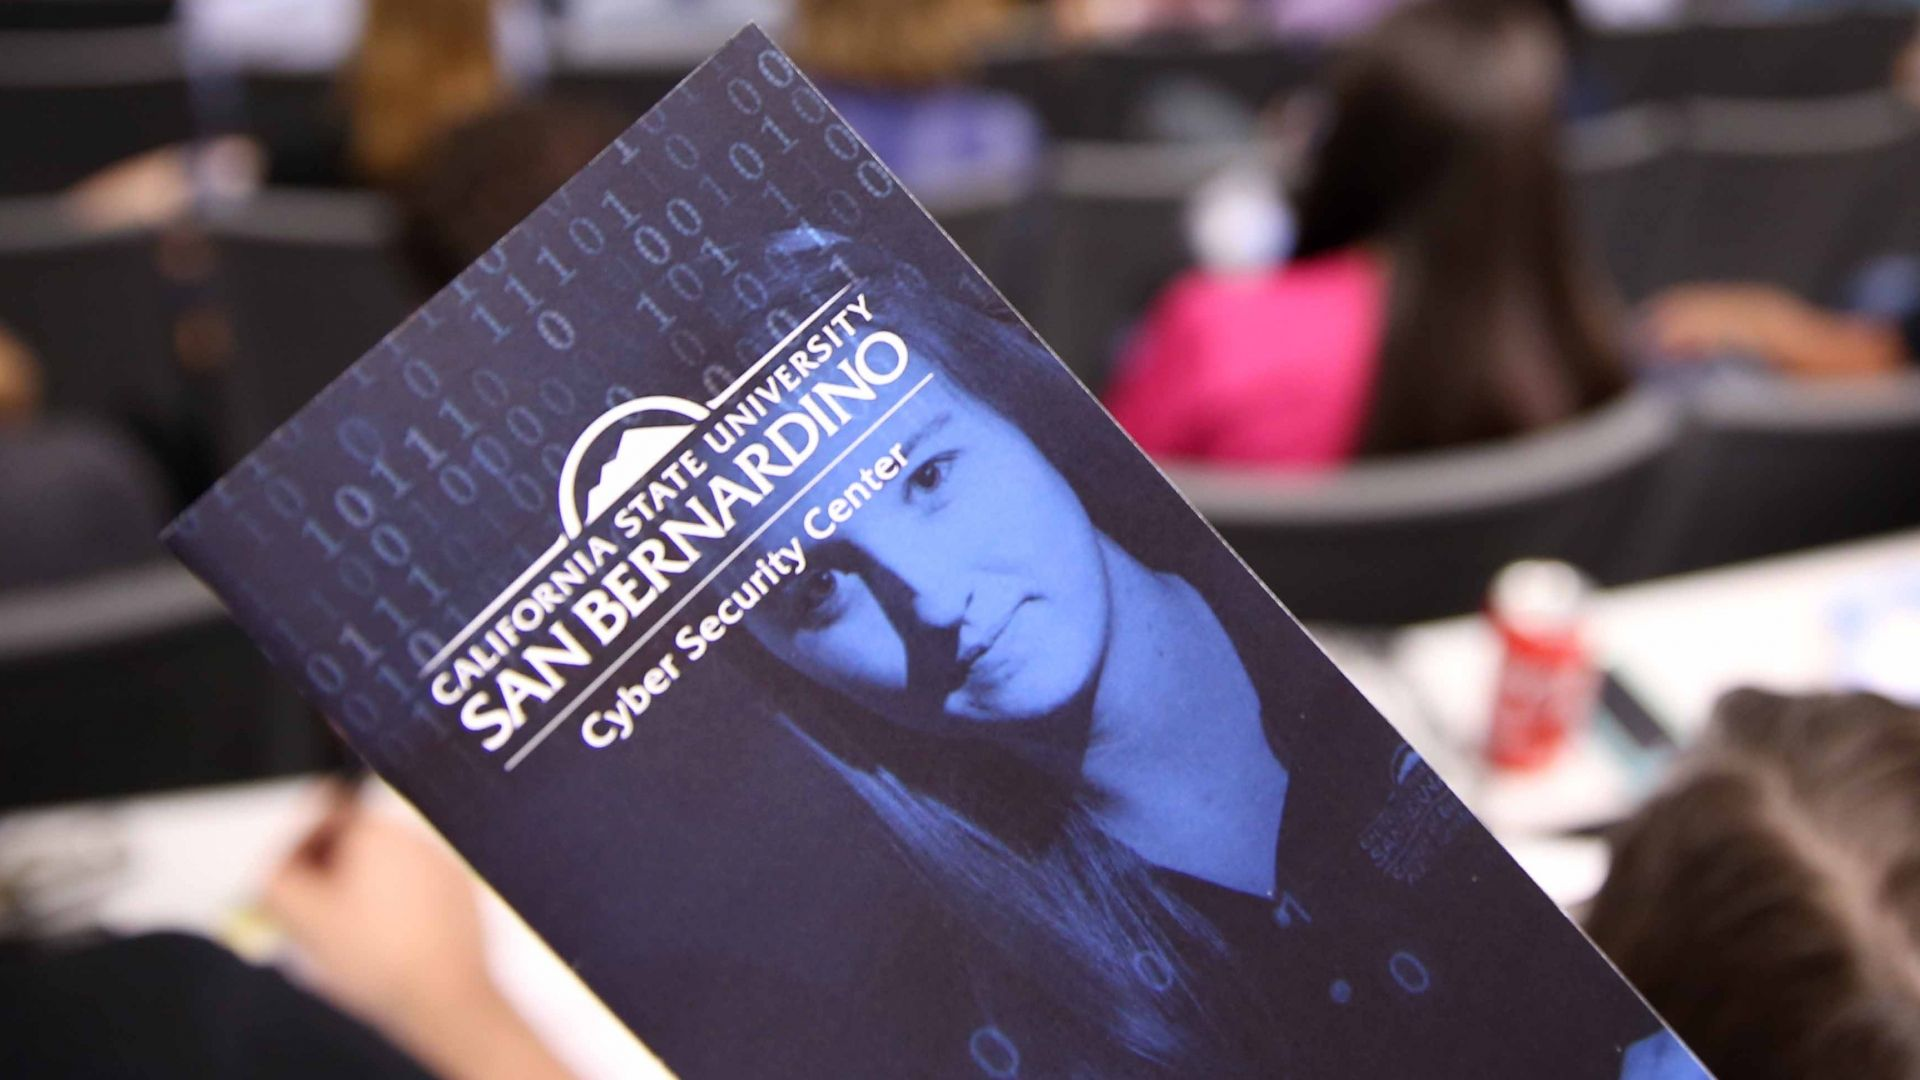 Cal State San Bernardino's Cybersecurity Center is hosting a six-week virtual camp for high school girls from San Bernardino and Riverside counties to increase awareness and interest in cybersecurity education, while building diversity in the nation's growing cyber workforce.